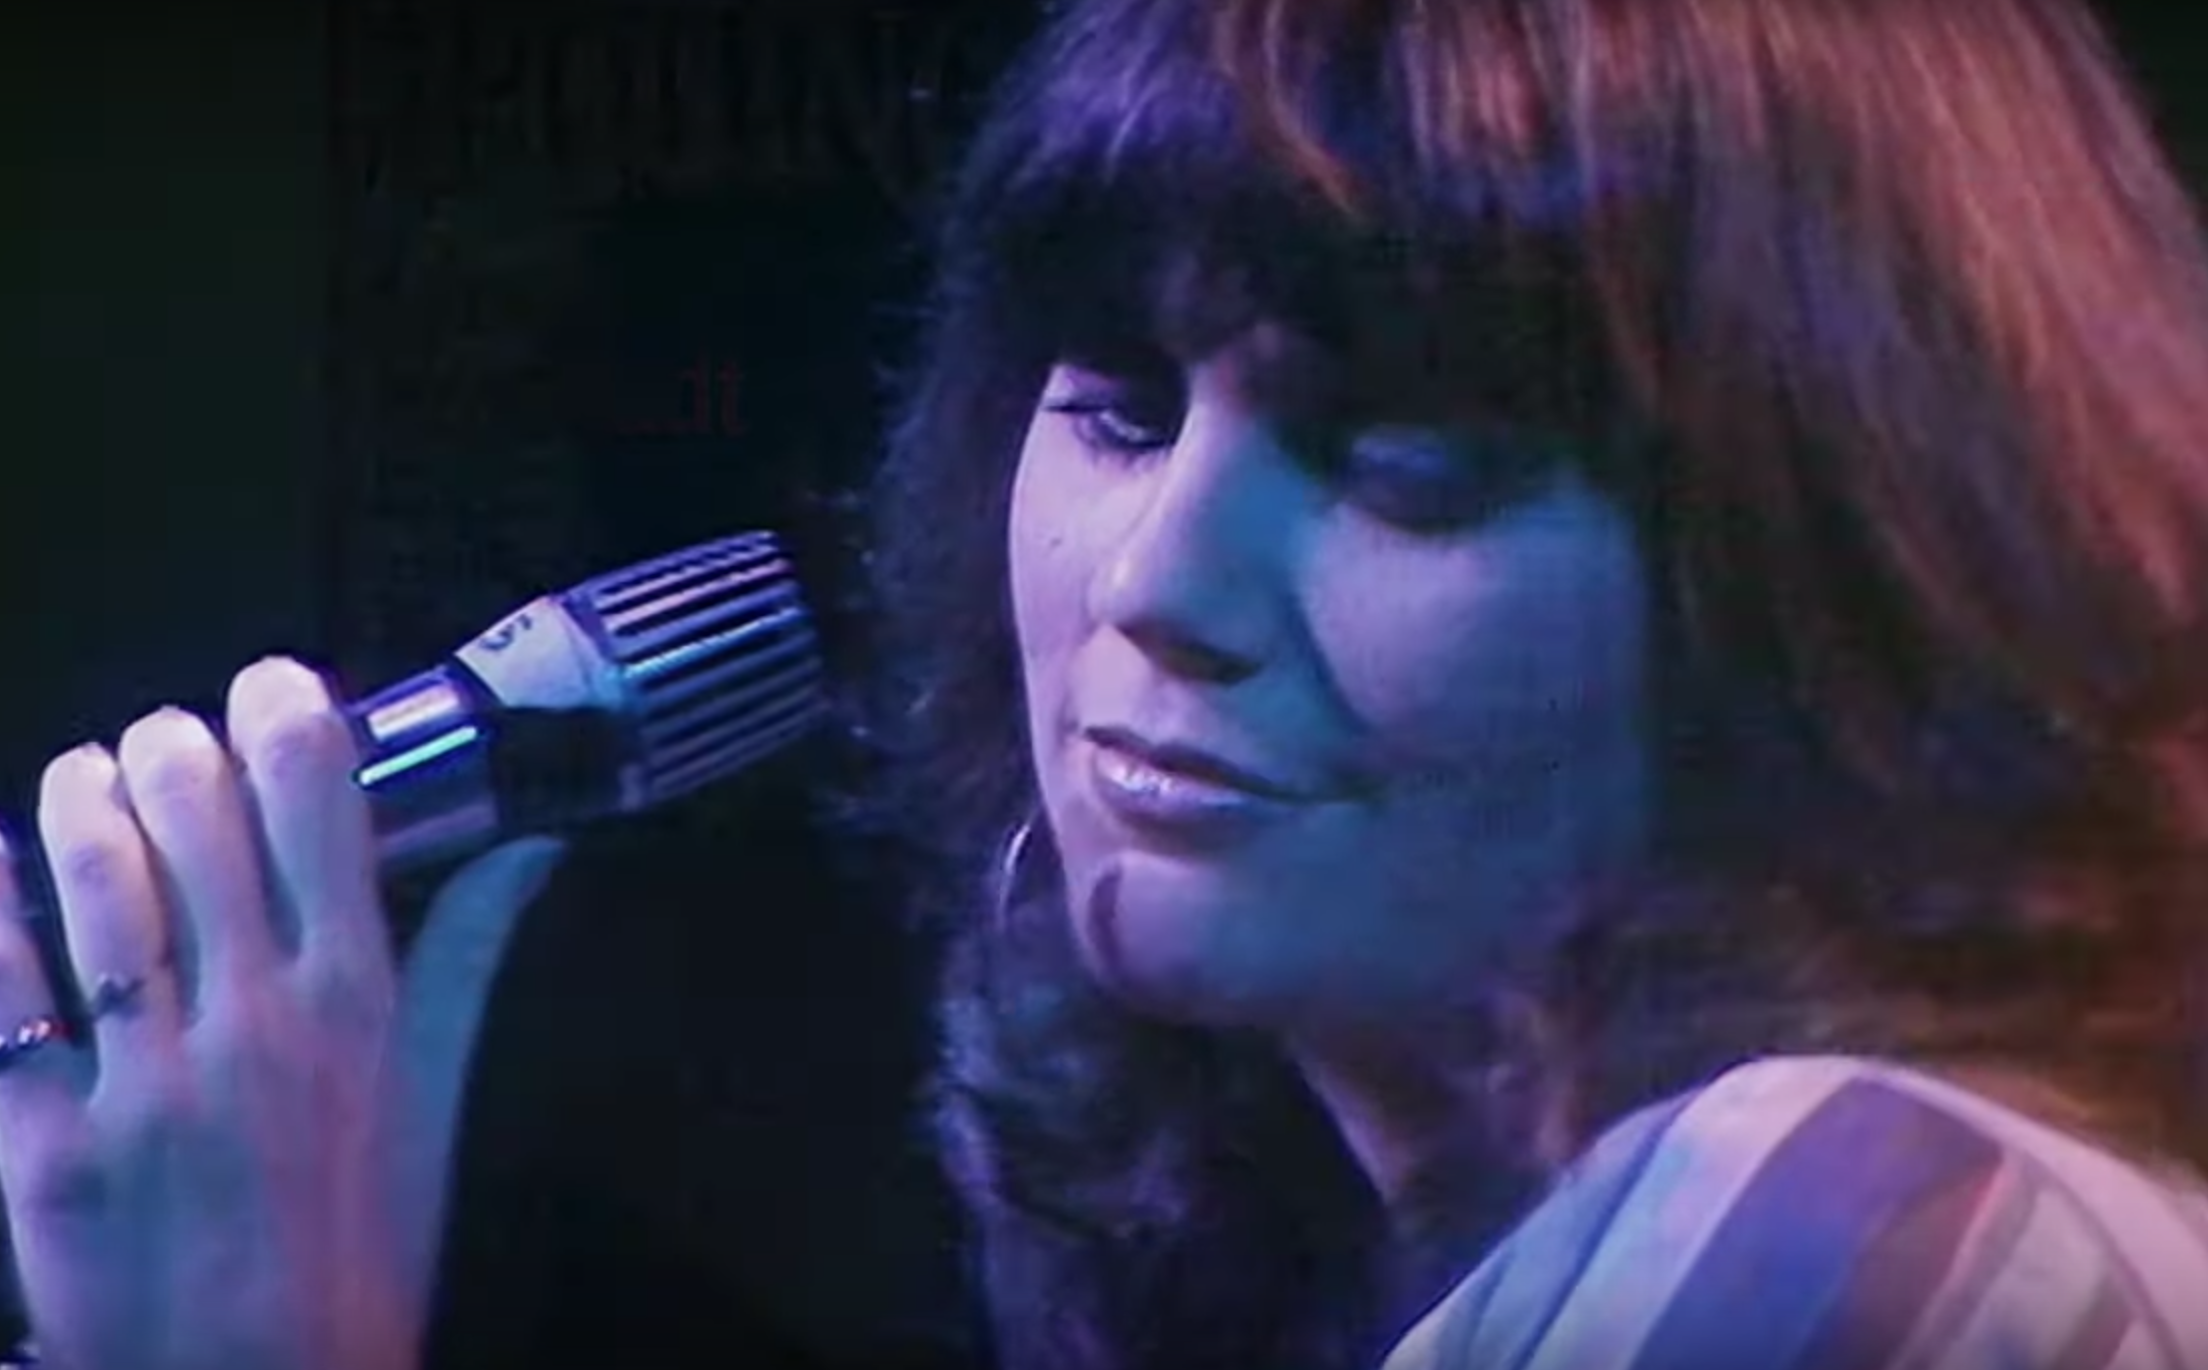 'Linda Ronstadt: The Sound of My Voice' Trailer: A Loving Tribute to the Singer